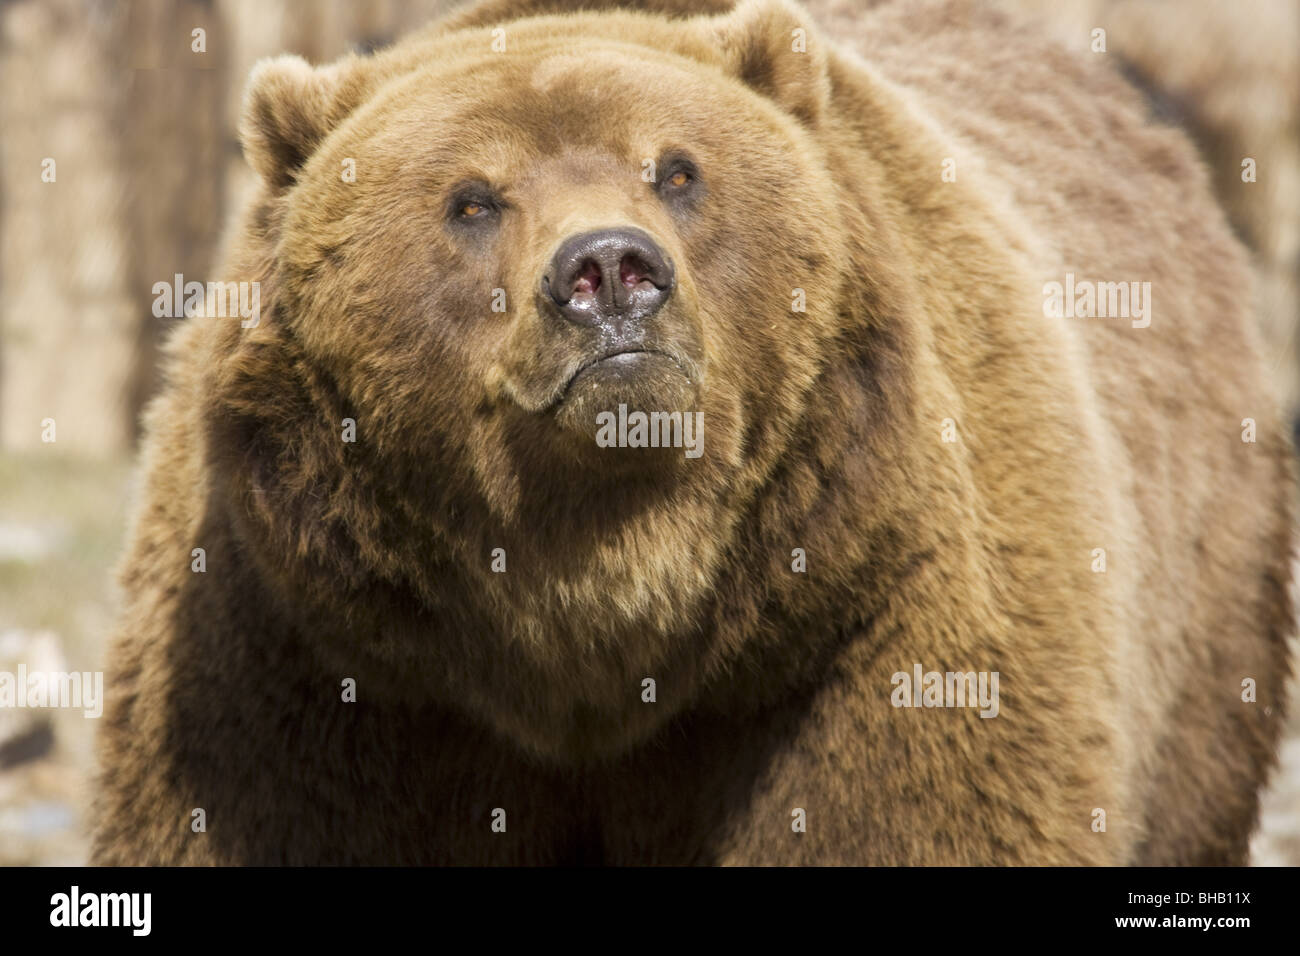 CAPTIVE Grizzly at the Alaska Zoo, Southcentral Alaska - Stock Image